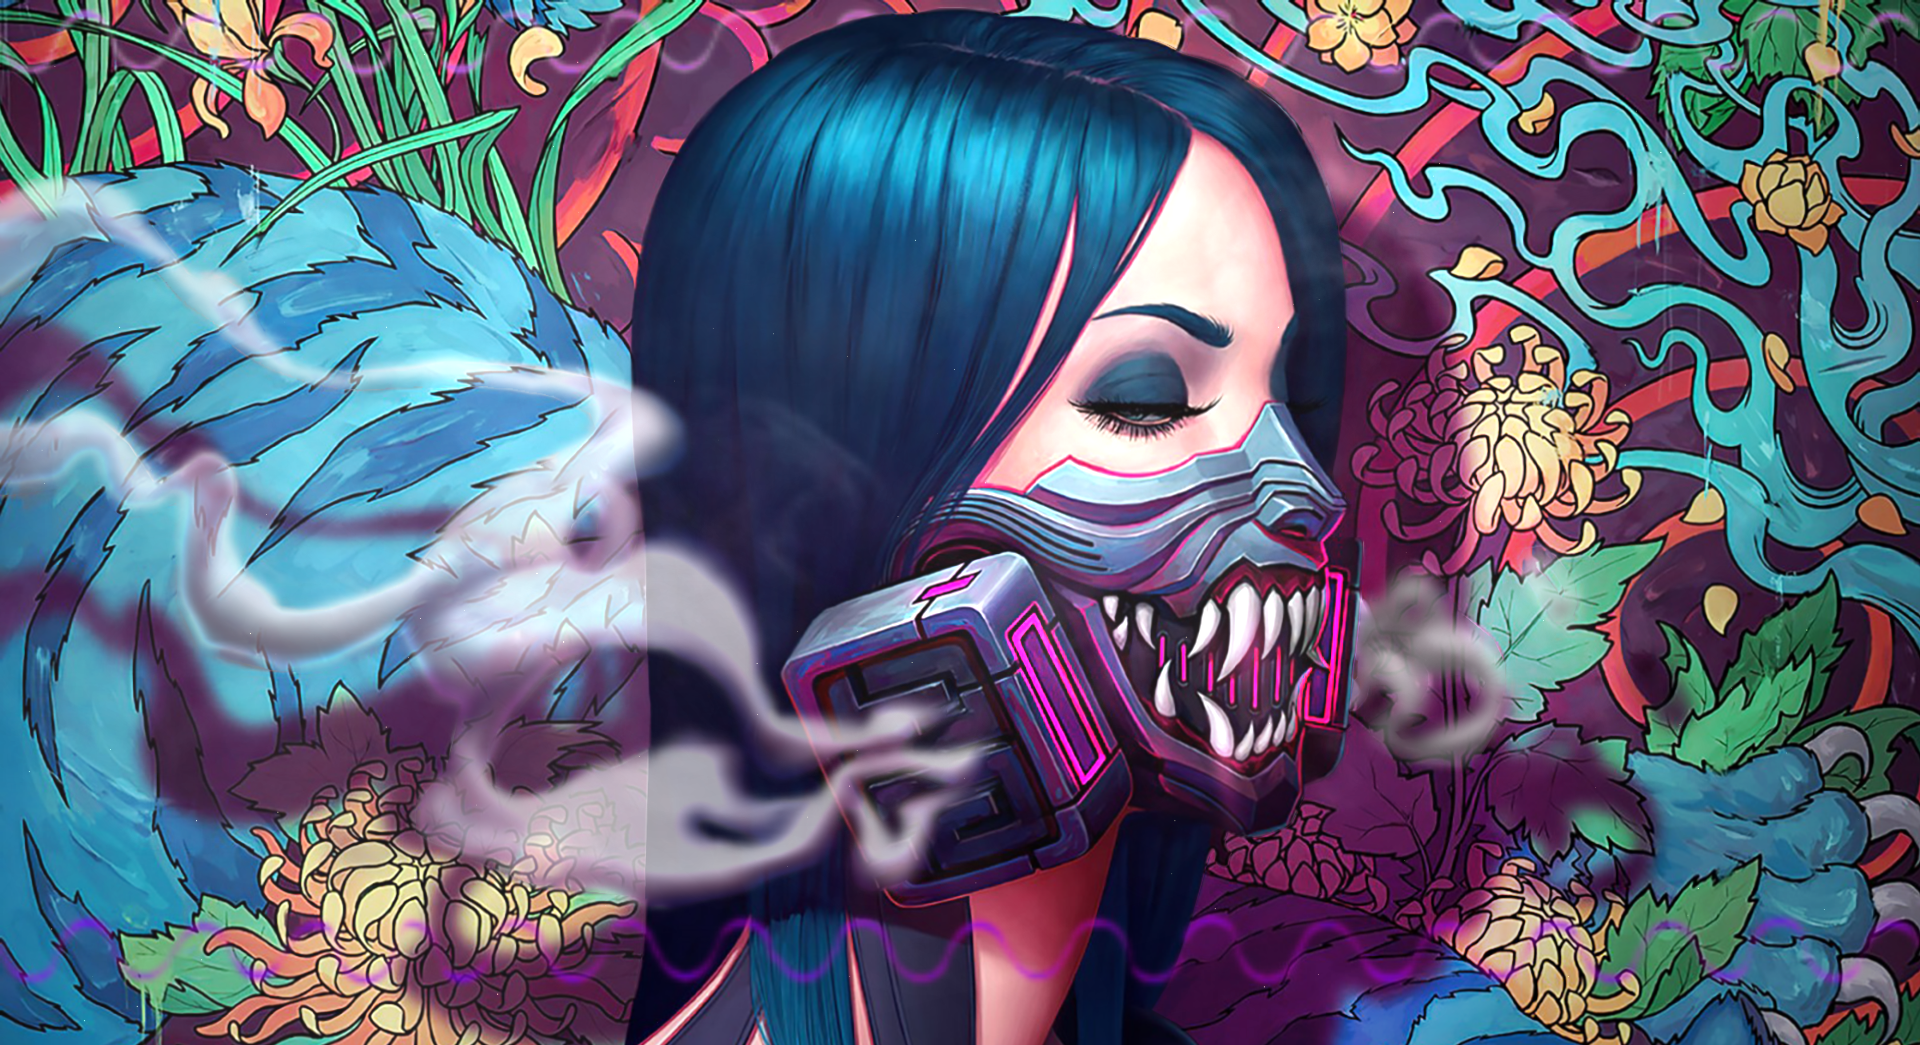 Tora Oni Mask Cyberpunk Gas Girls Live Wallpaper 29958 Download Free Find best oni mask wallpaper and ideas by device, resolution, and quality (hd, 4k) from a curated website list. tora oni mask cyberpunk gas girls